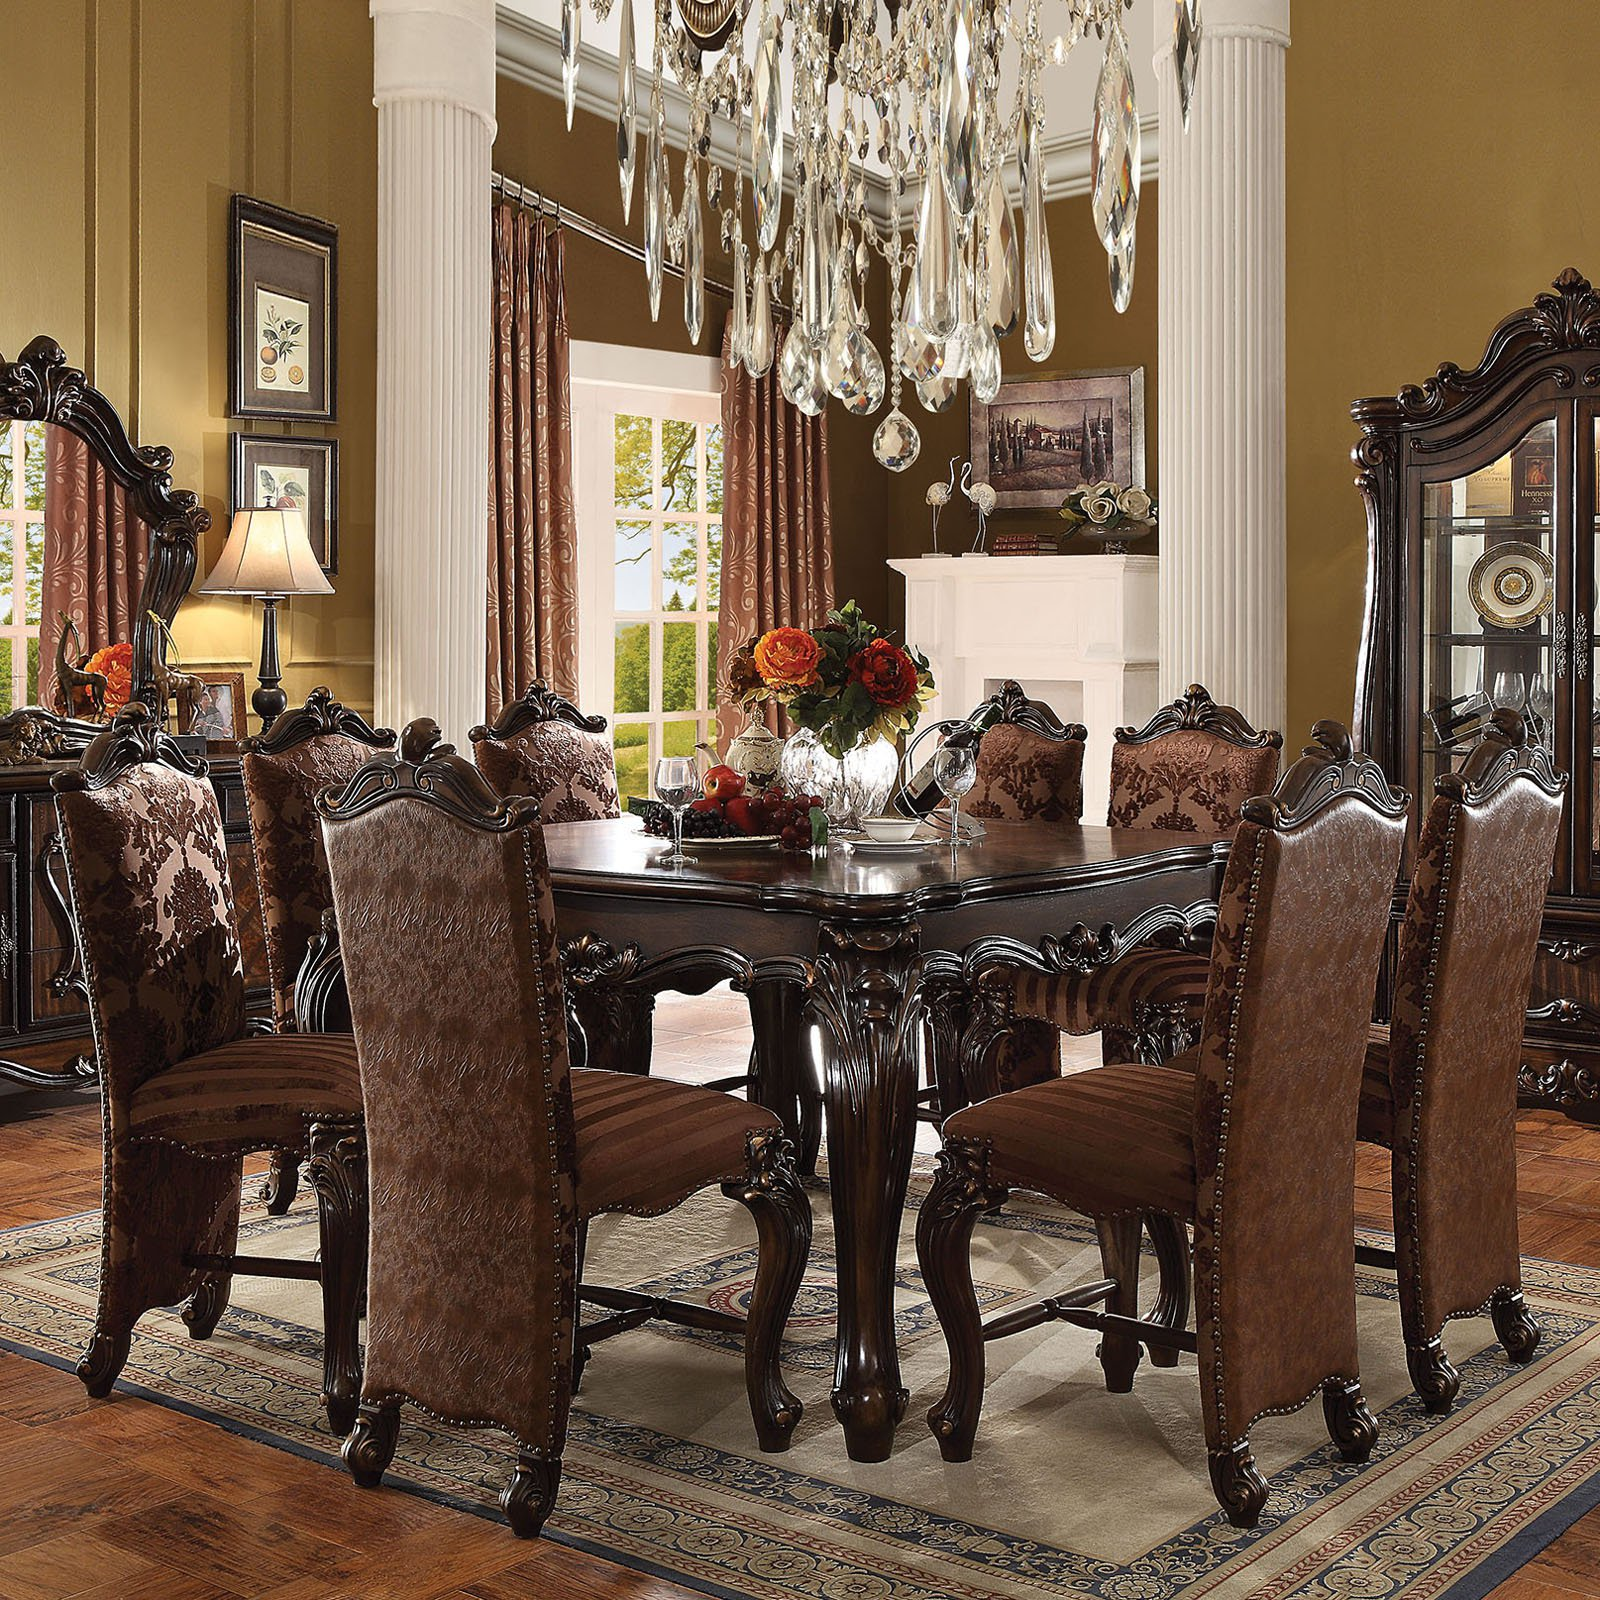 Acme Furniture Versailles 9 Piece Square Counter Height Dining Table Set & Acme Furniture Versailles 9 Piece Square Counter Height Dining Table ...